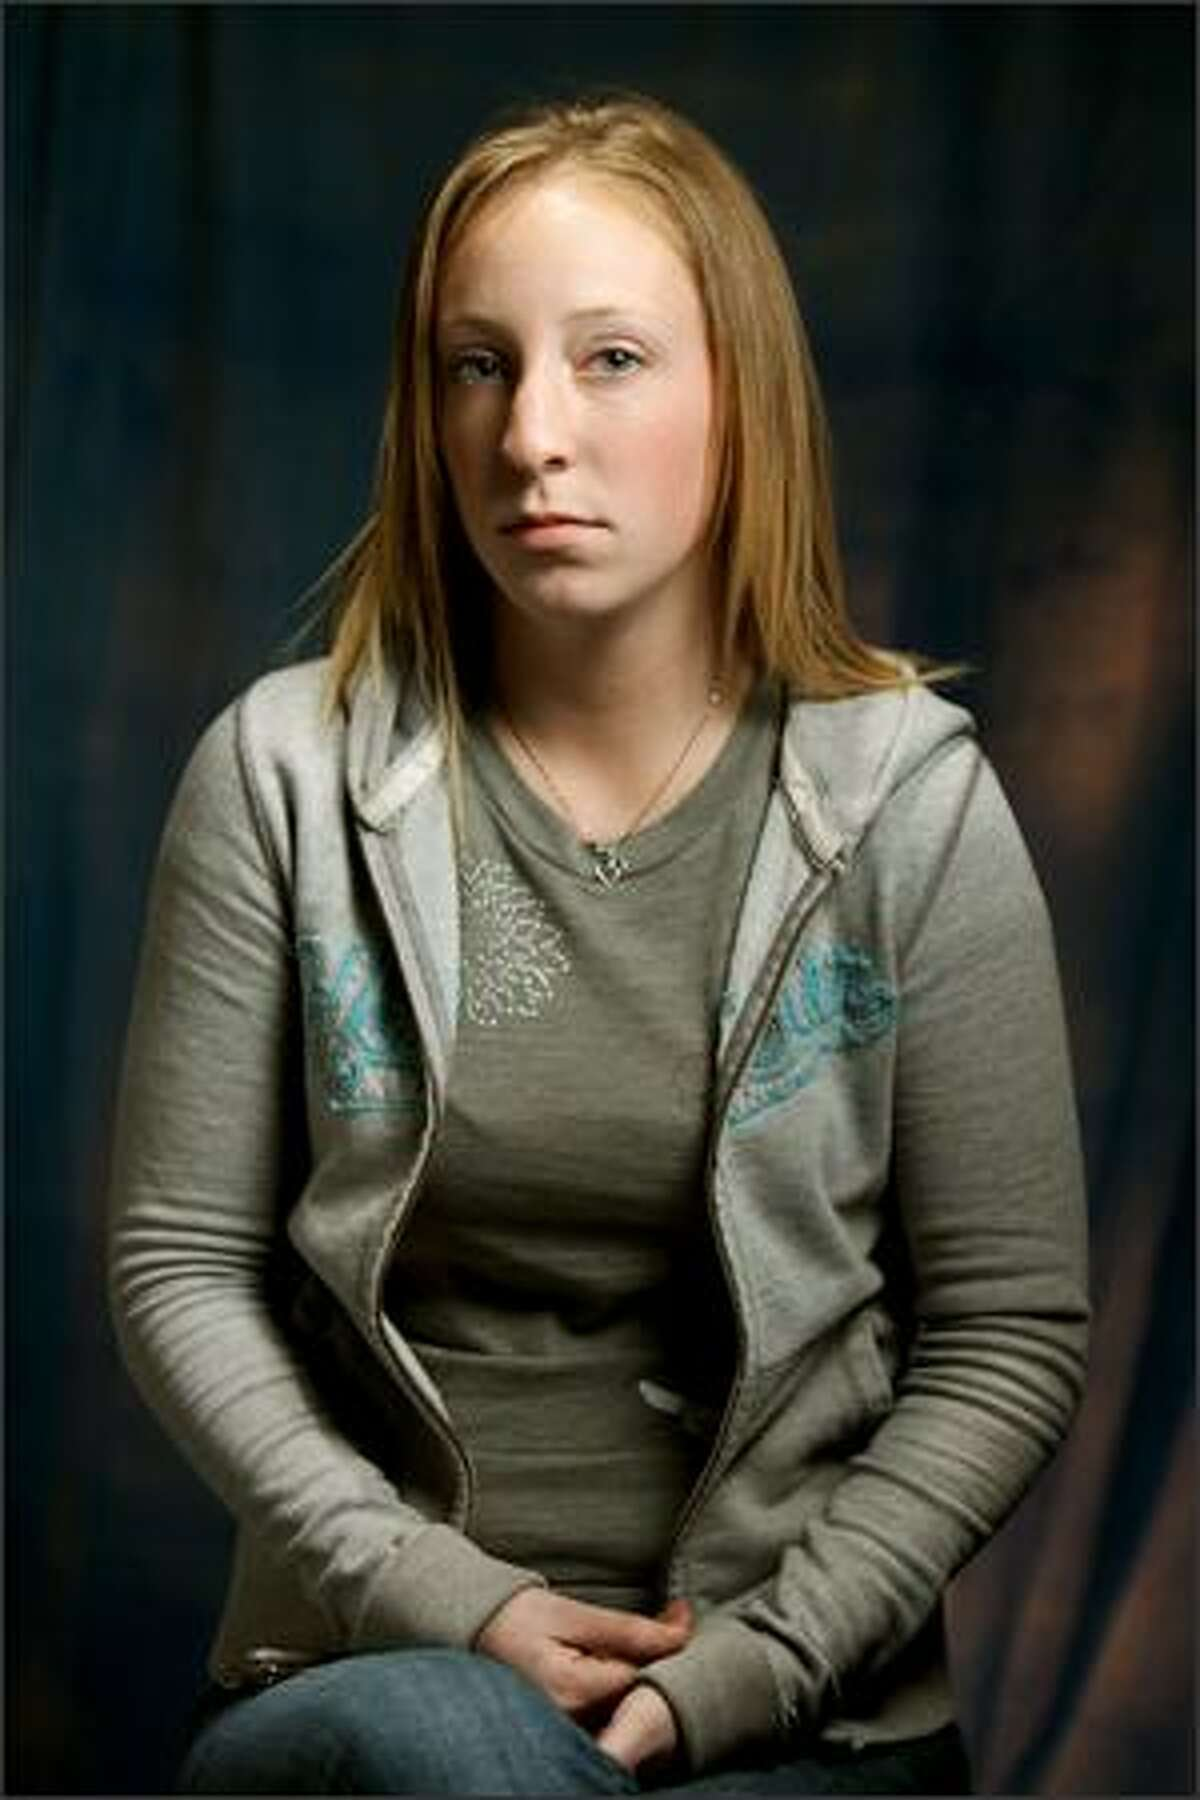 On Friday, Sabrina Rasmussen will confront the man who kidnapped and raped her.